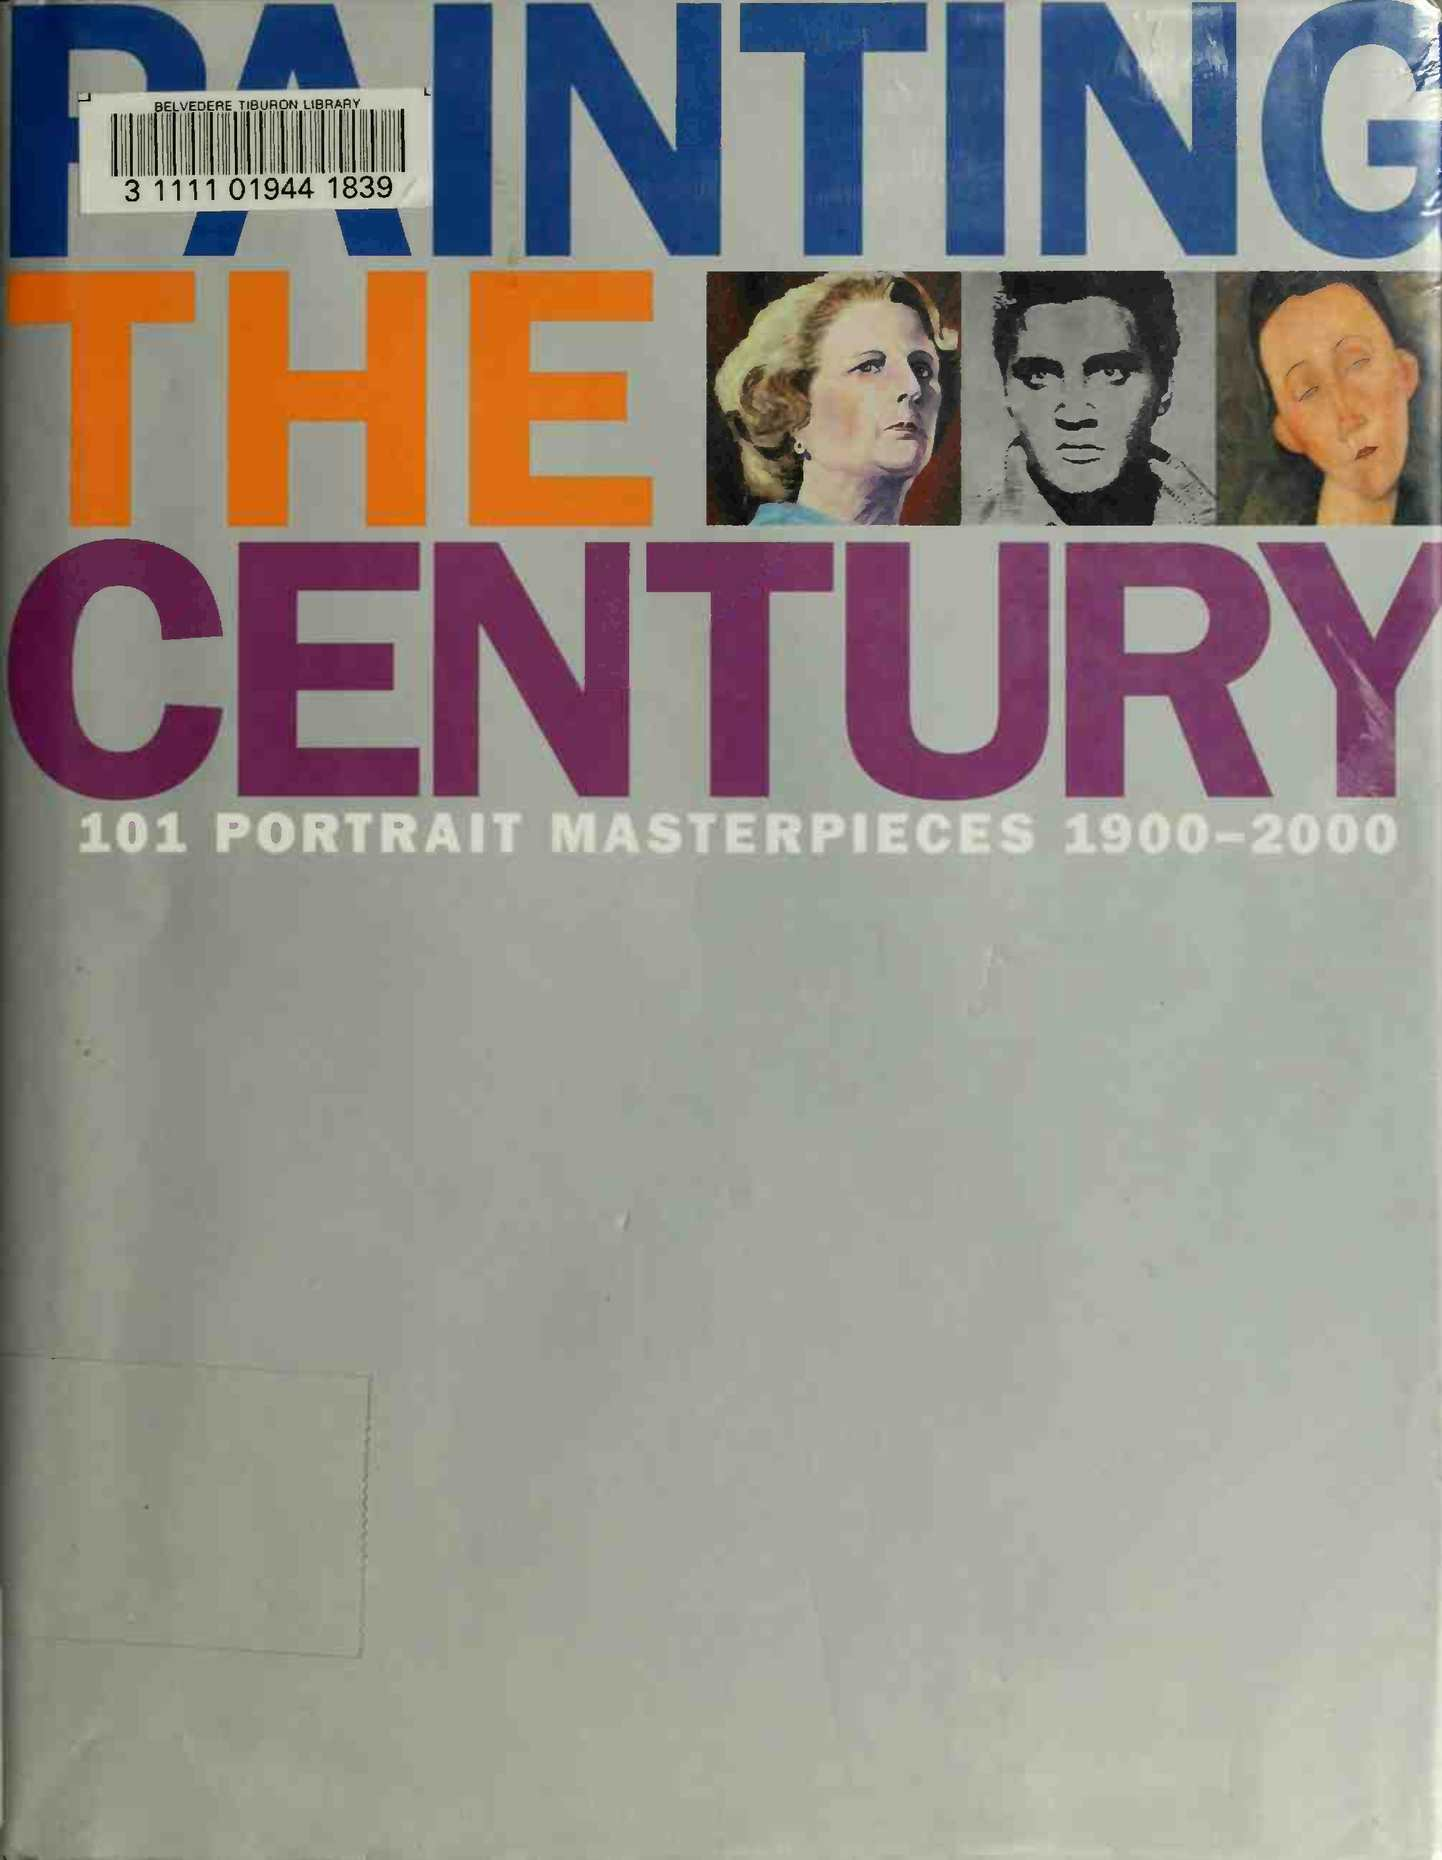 Calamo painting the century 101 portrait masterpieces art ebook fandeluxe Images